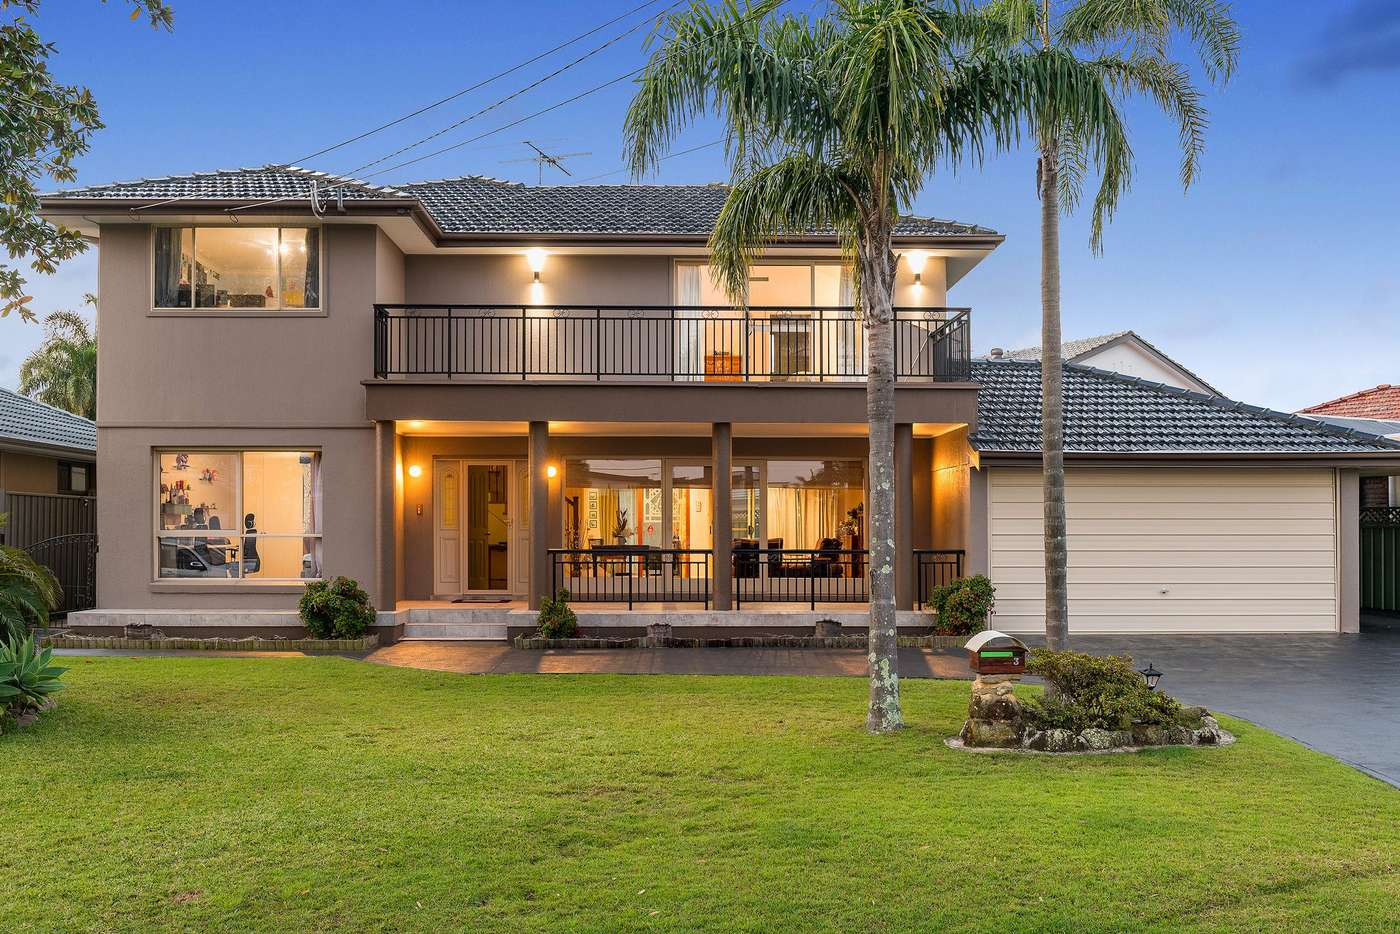 Main view of Homely house listing, 3 Ord Crescent, Sylvania Waters NSW 2224